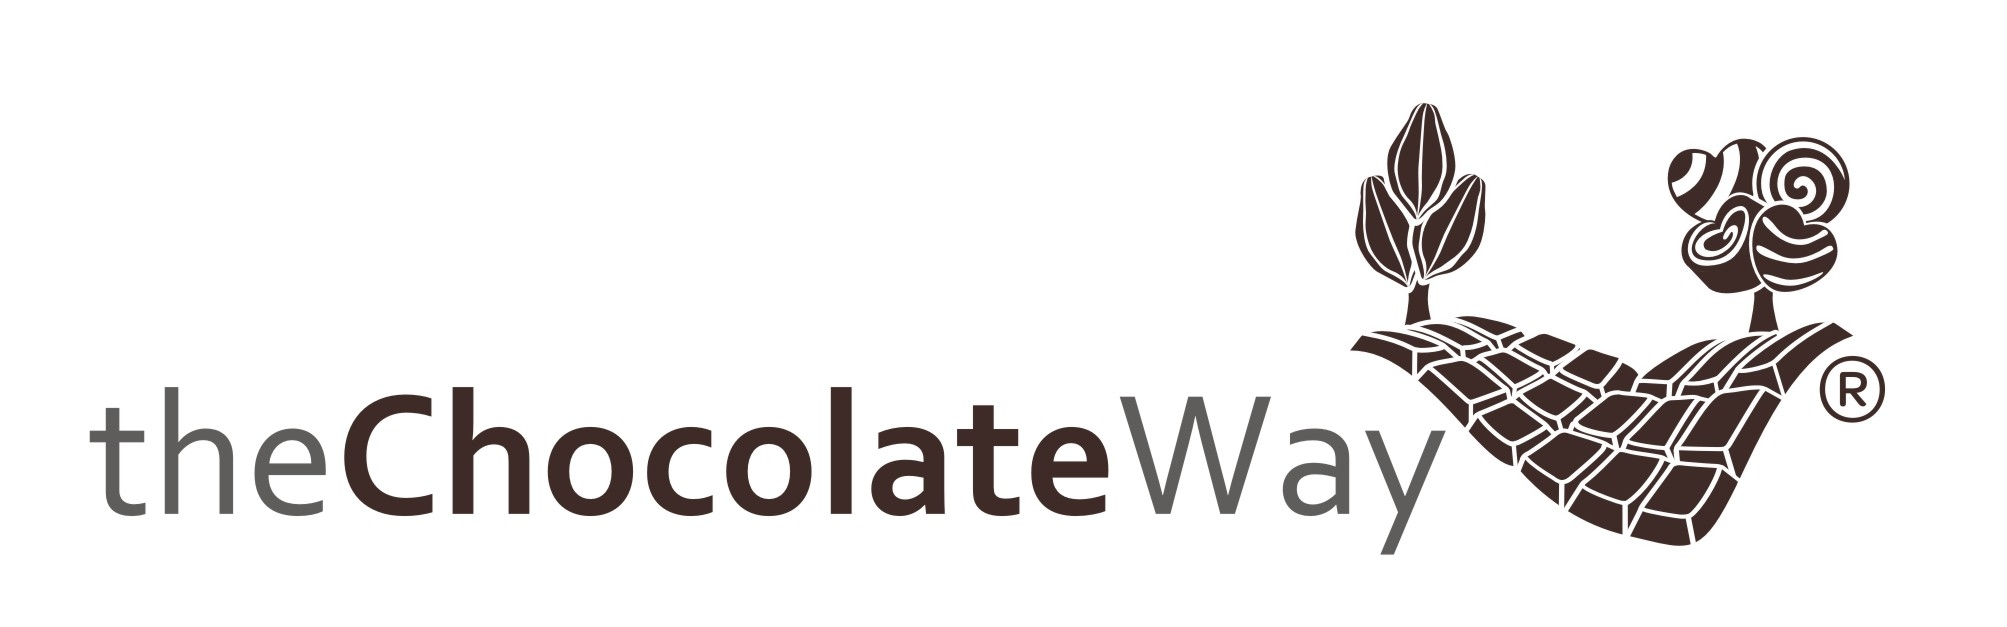 The Chocolate Way logo